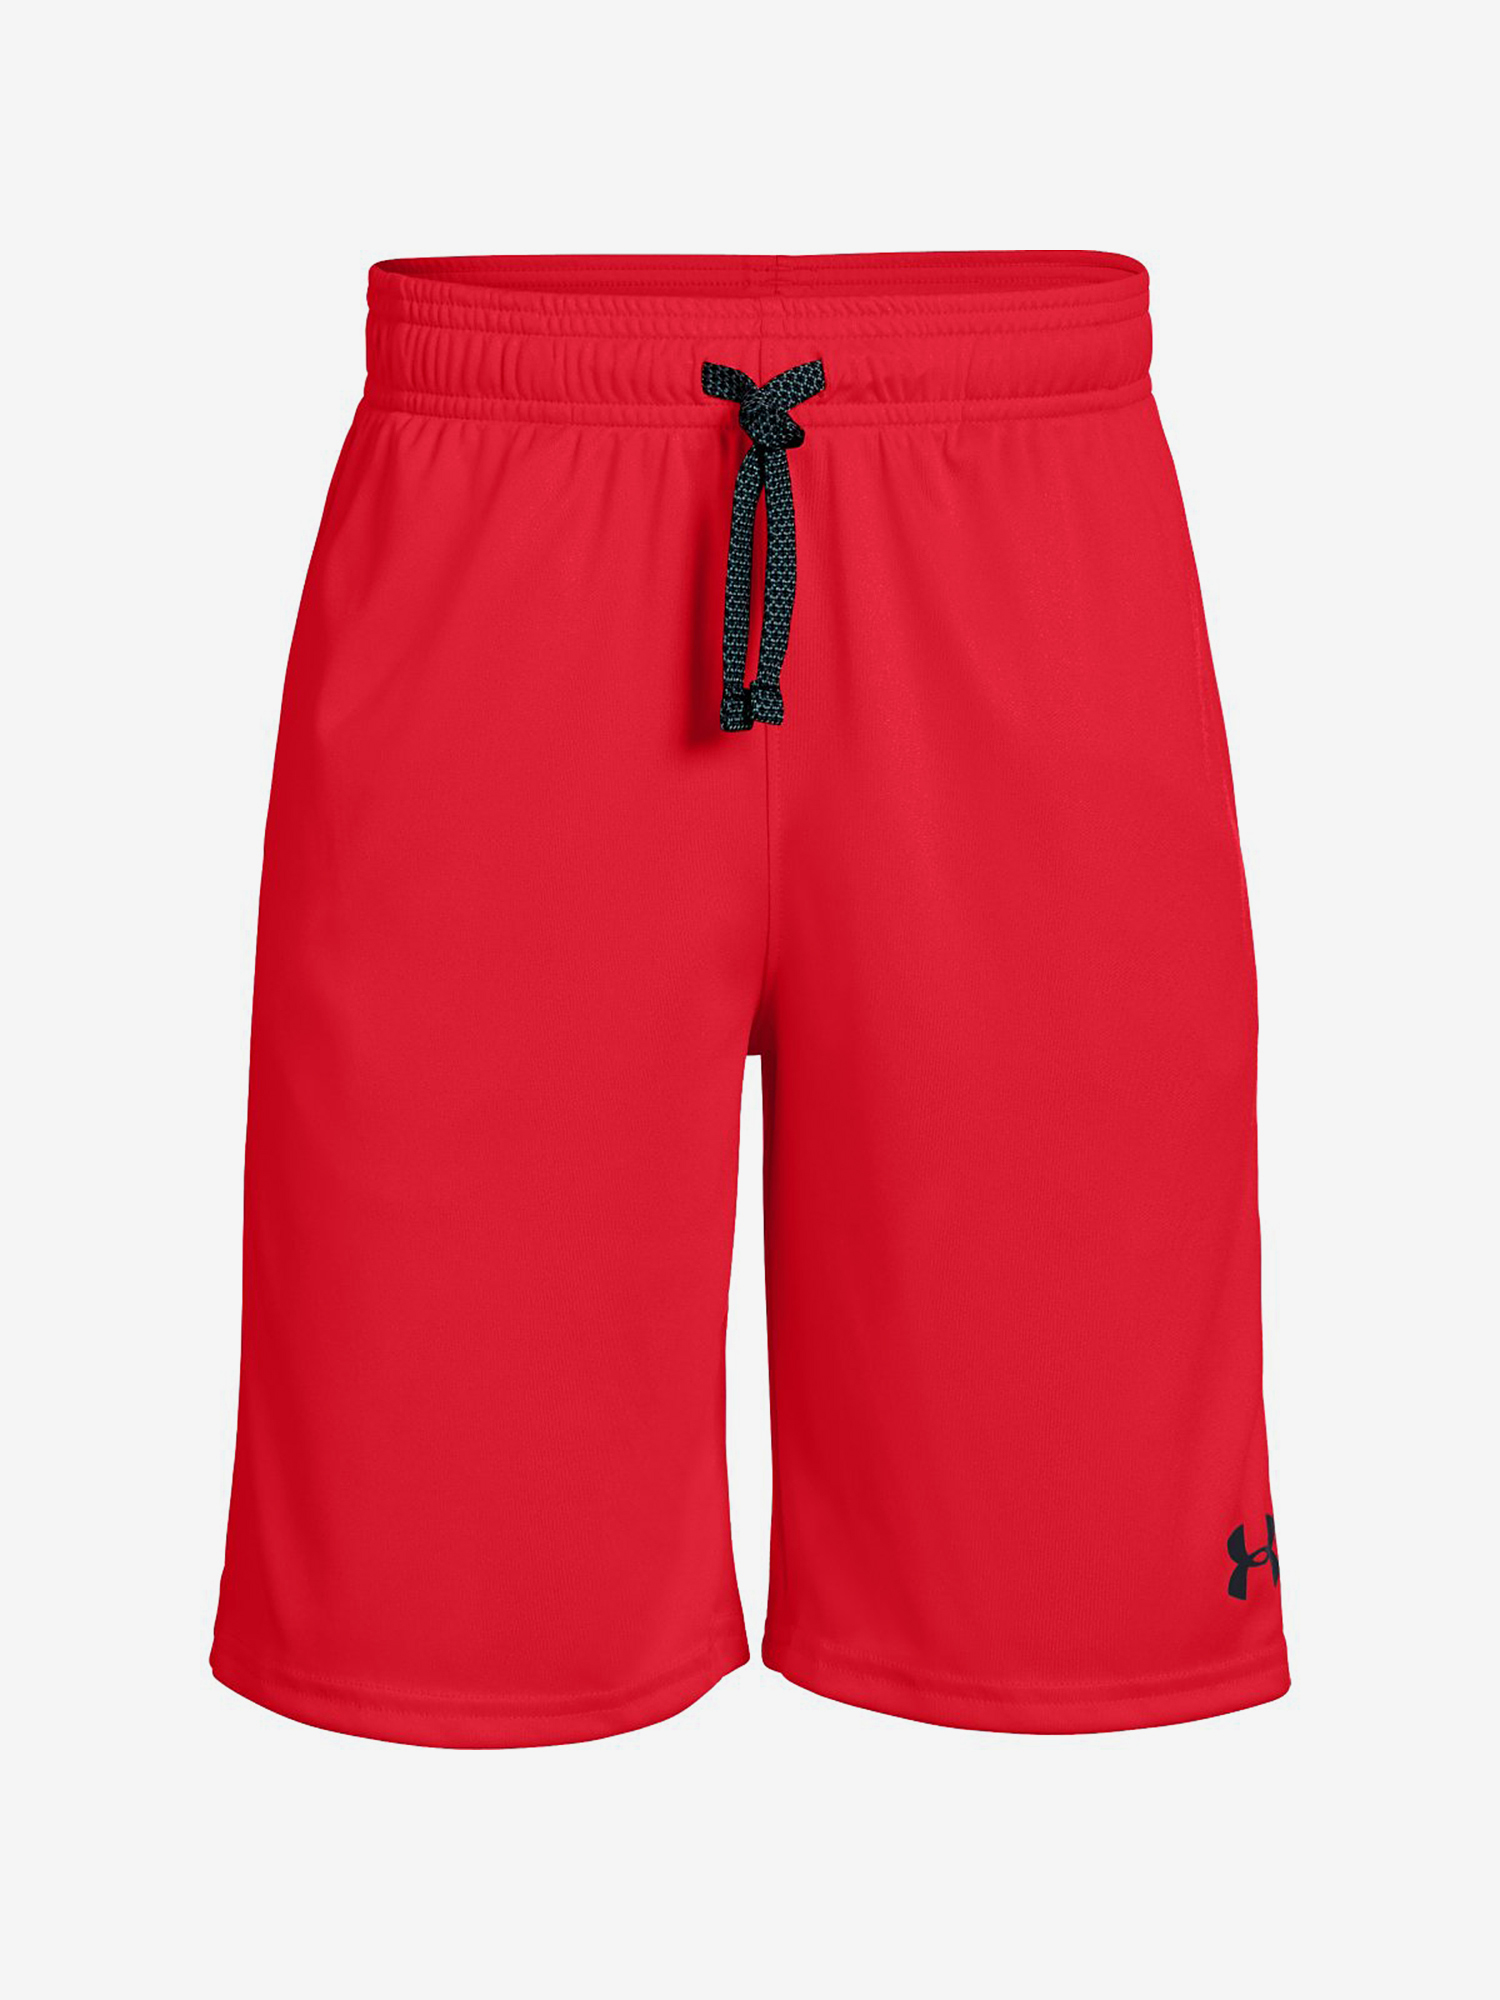 Kraťasy Under Armour Prototype Wordmark Shorts-Red Červená